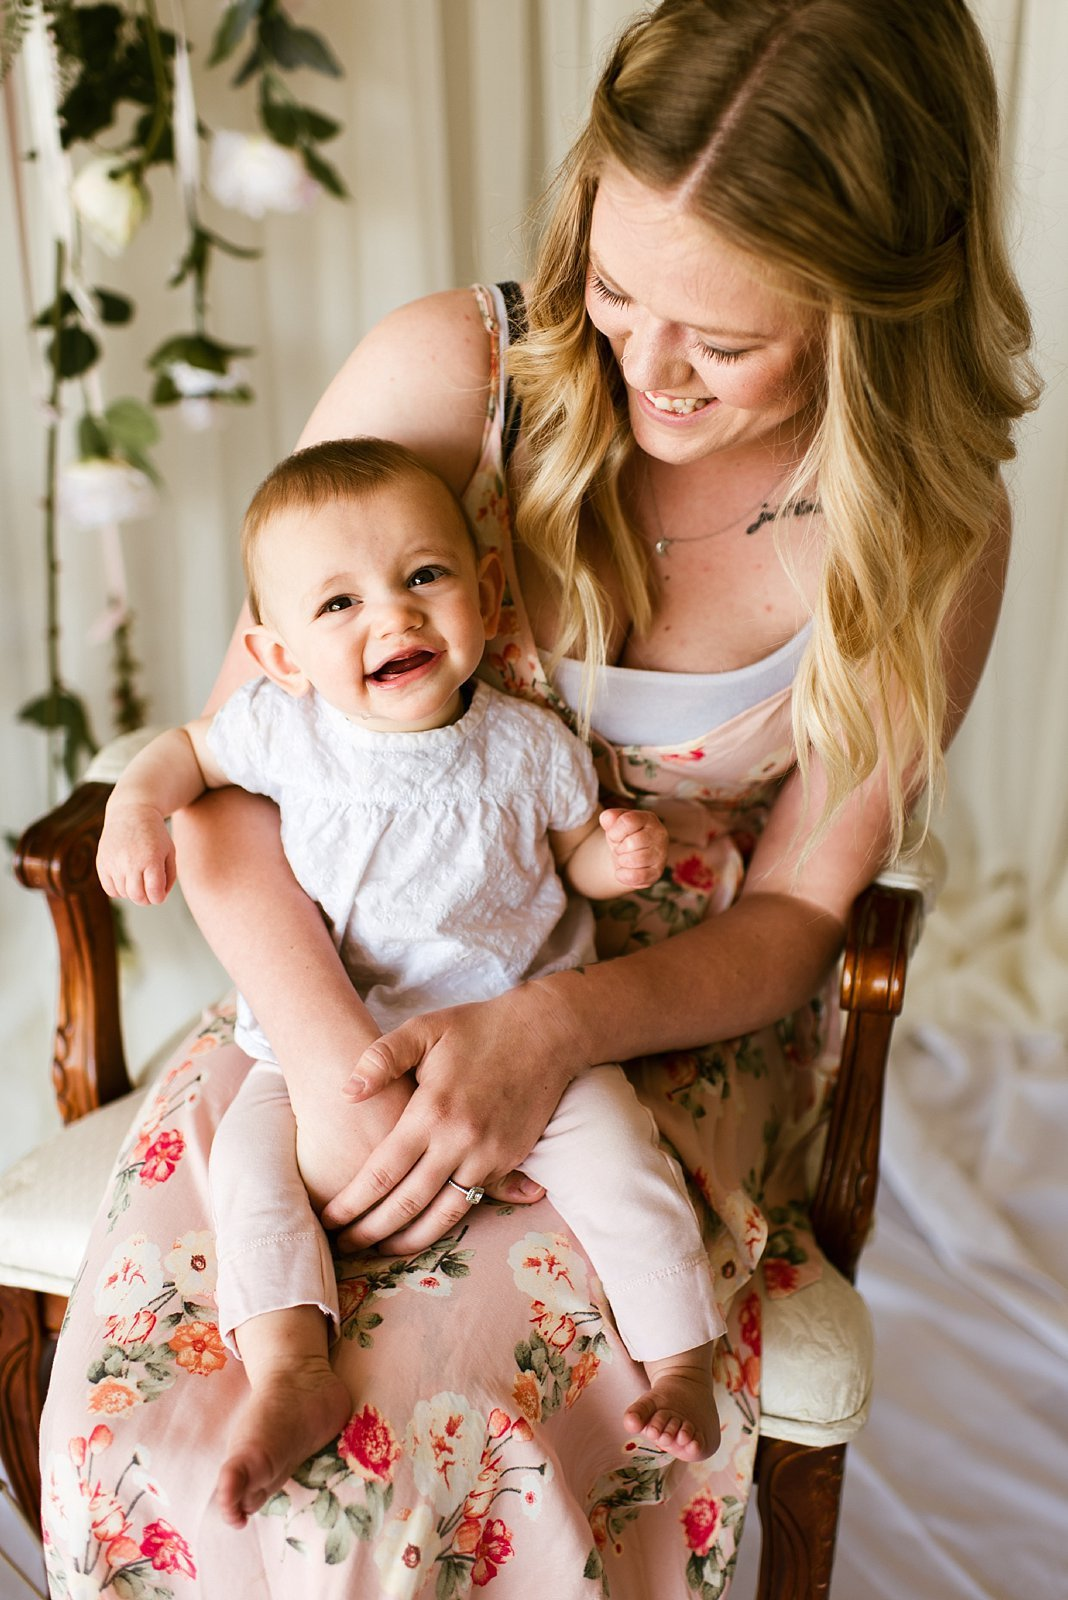 mother with child on lap smiling